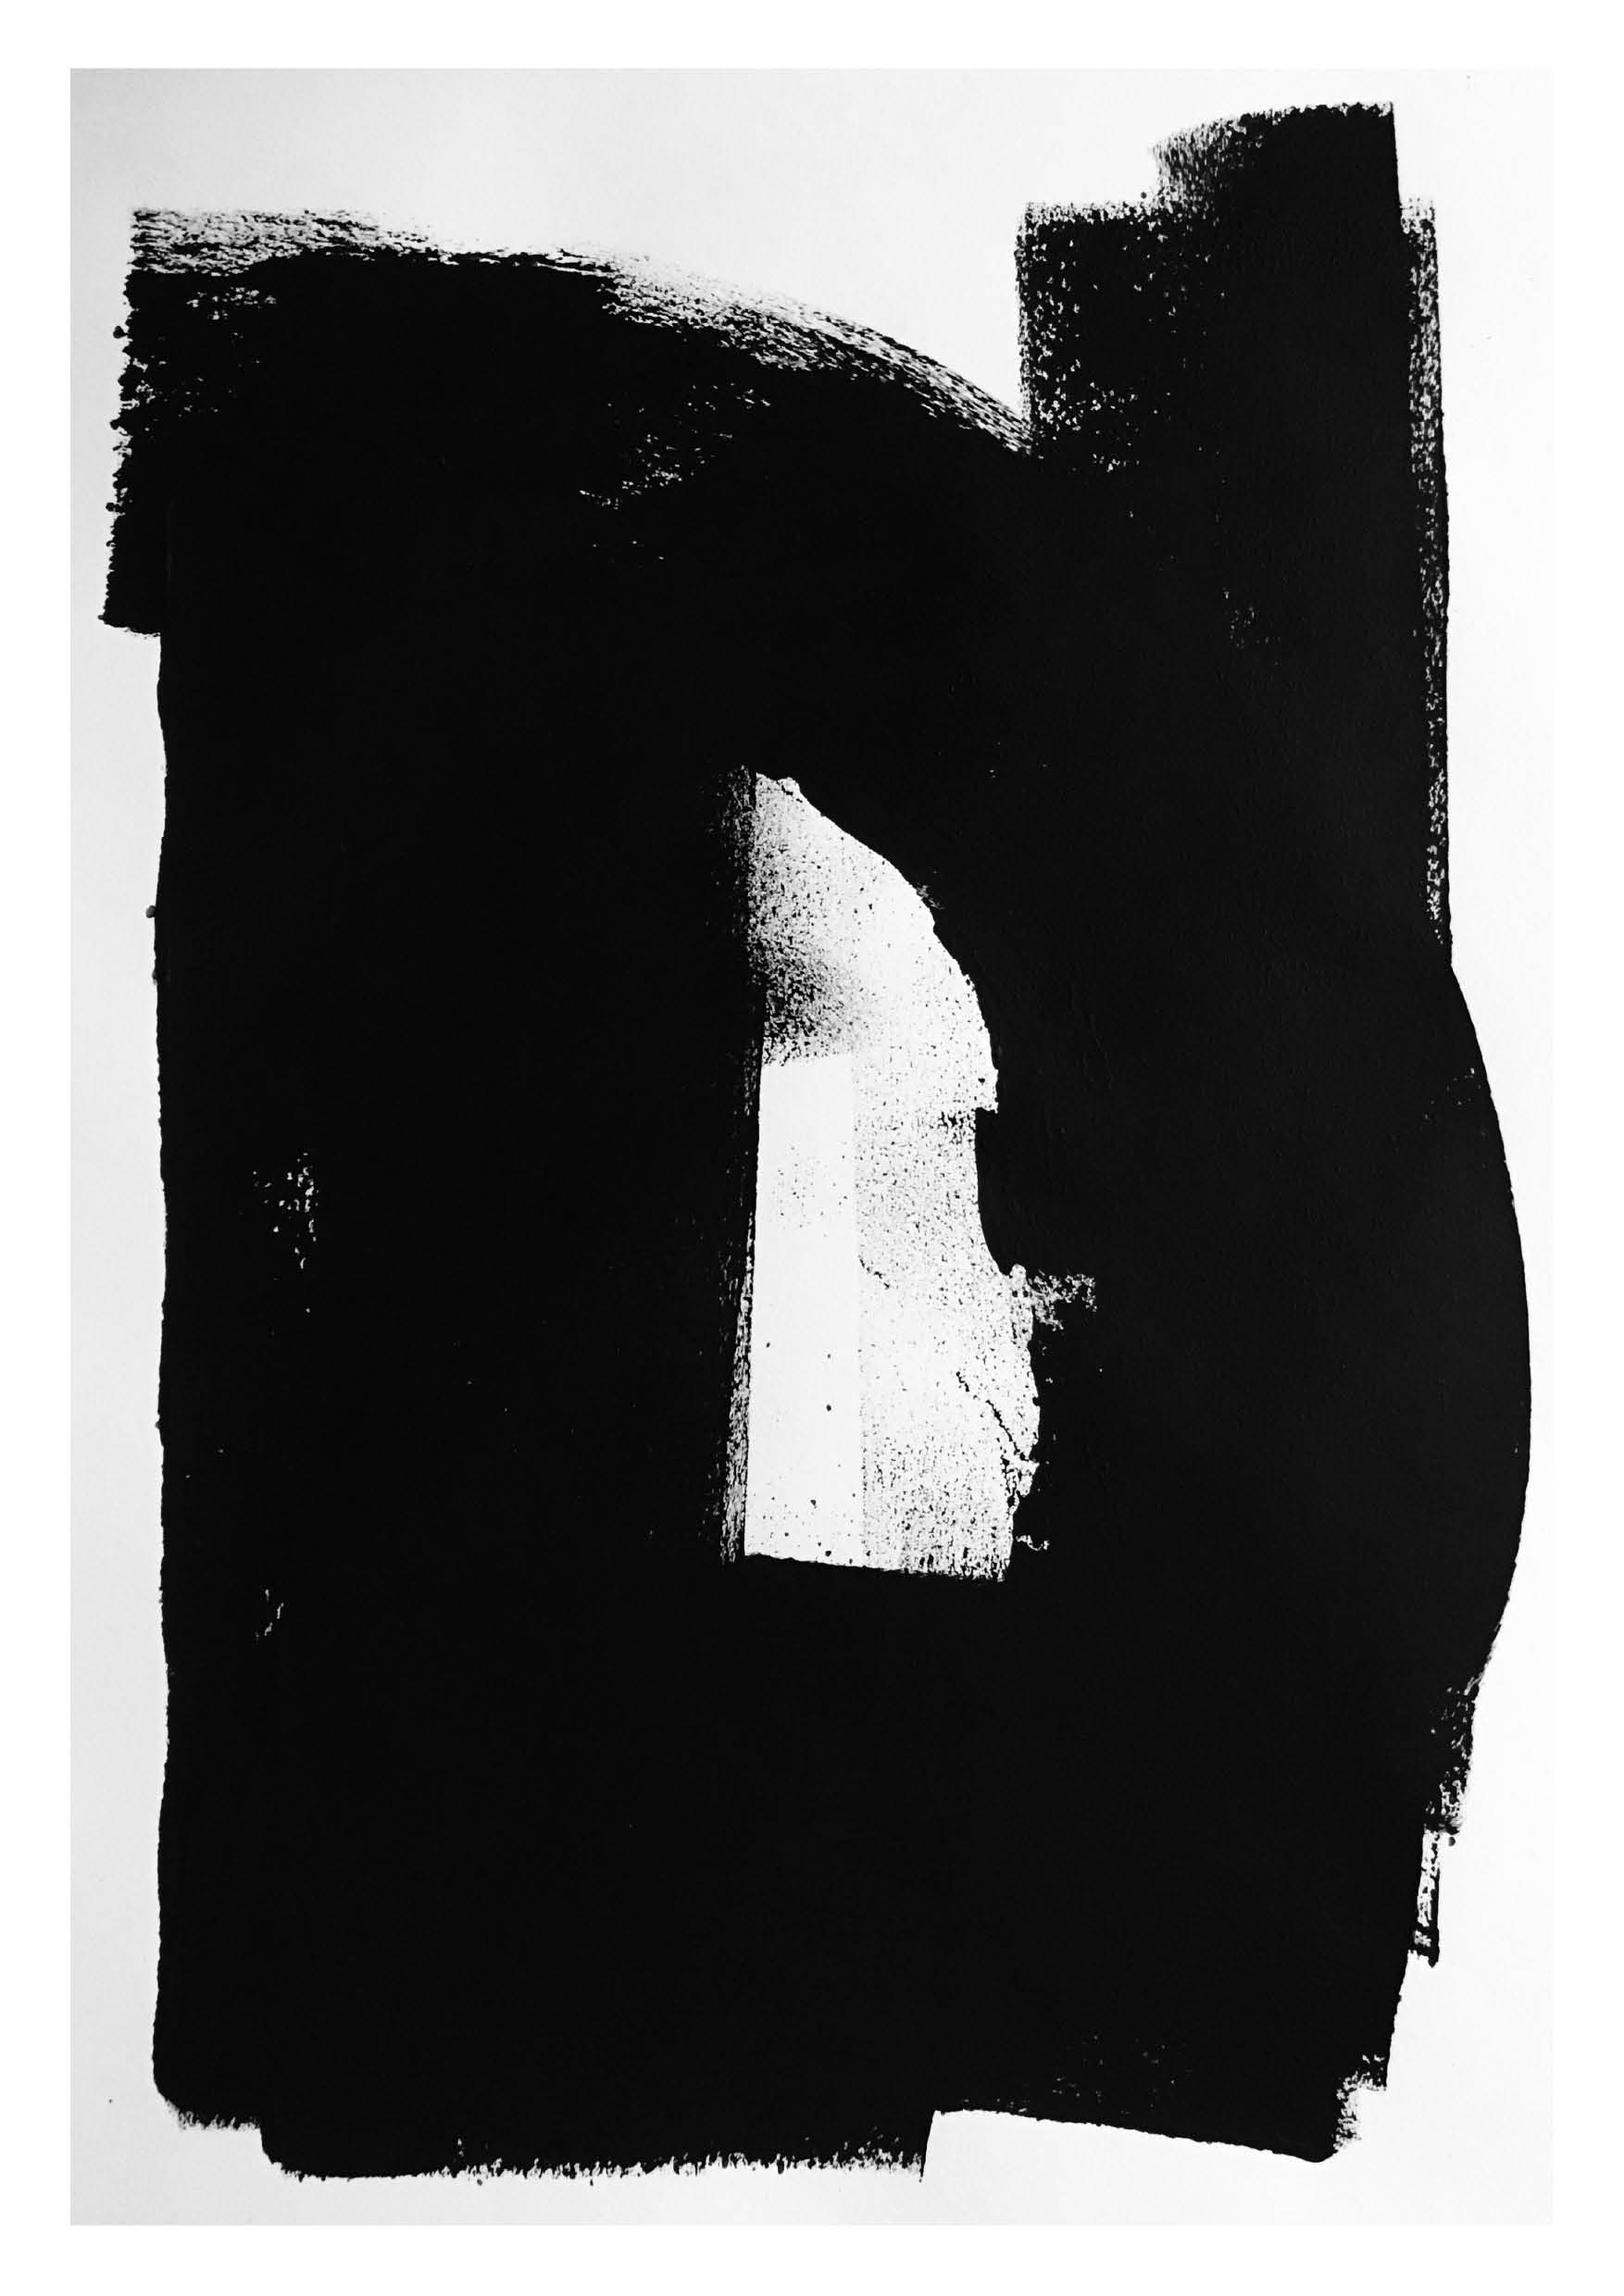 Untitled 5 – Black Acrylic on Paper